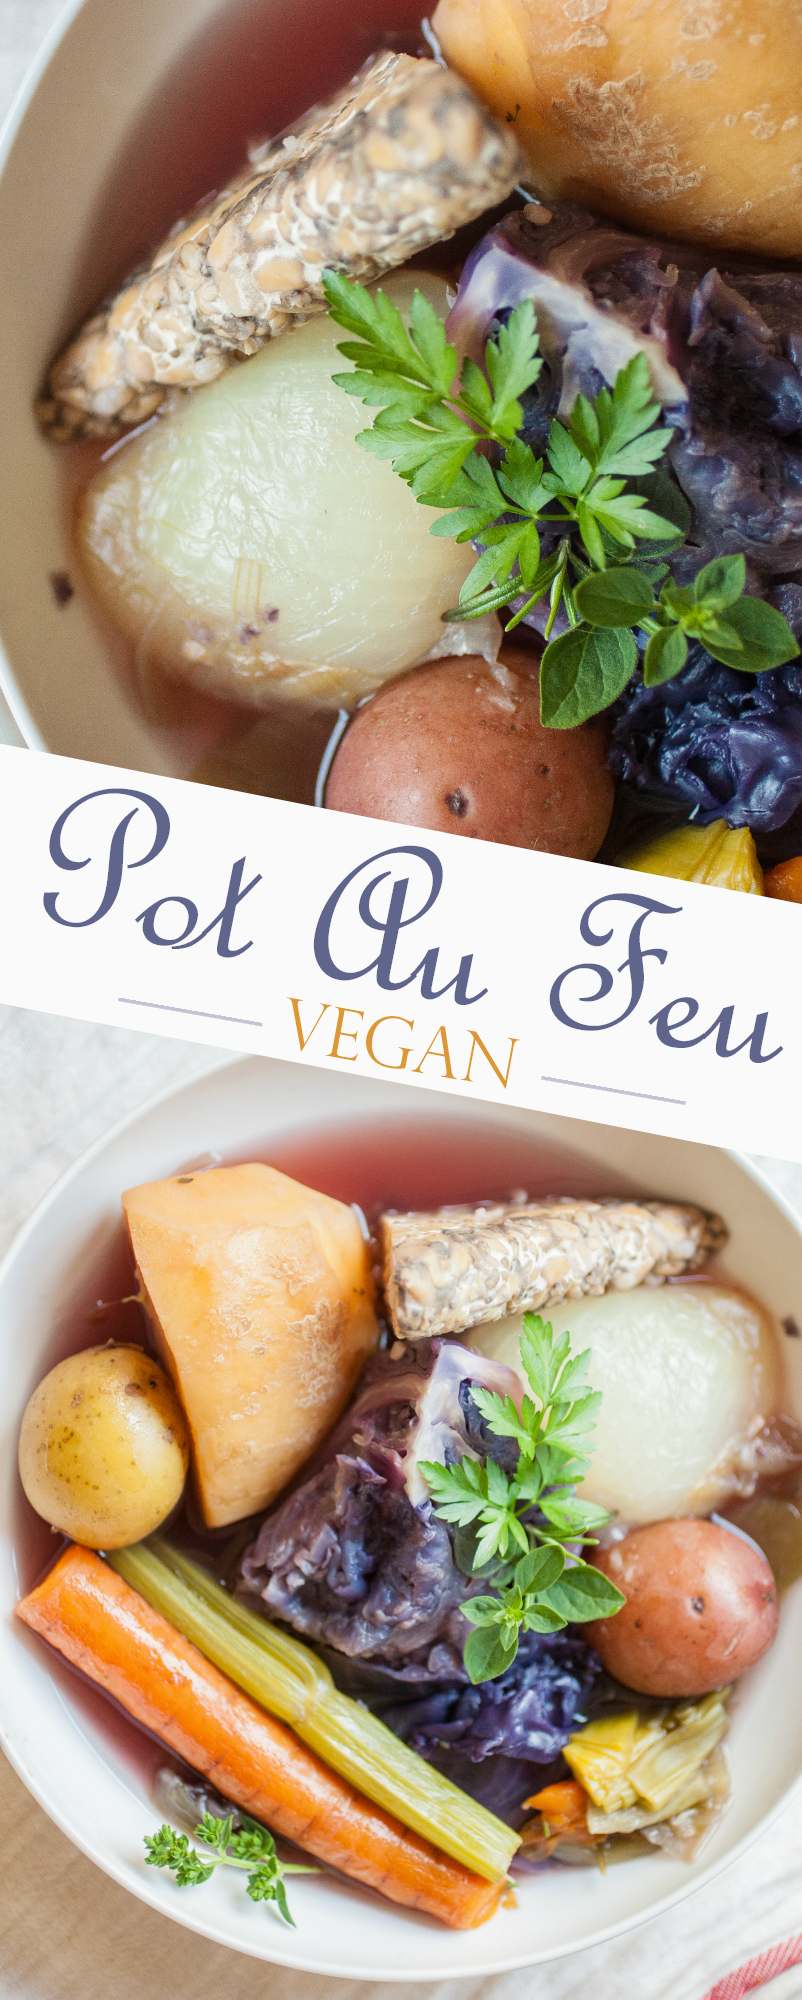 Produce On Parade - Pot Au Feu - This is a vegan spin on a simple vegetable dish from France, using tempeh instead of animal meat.